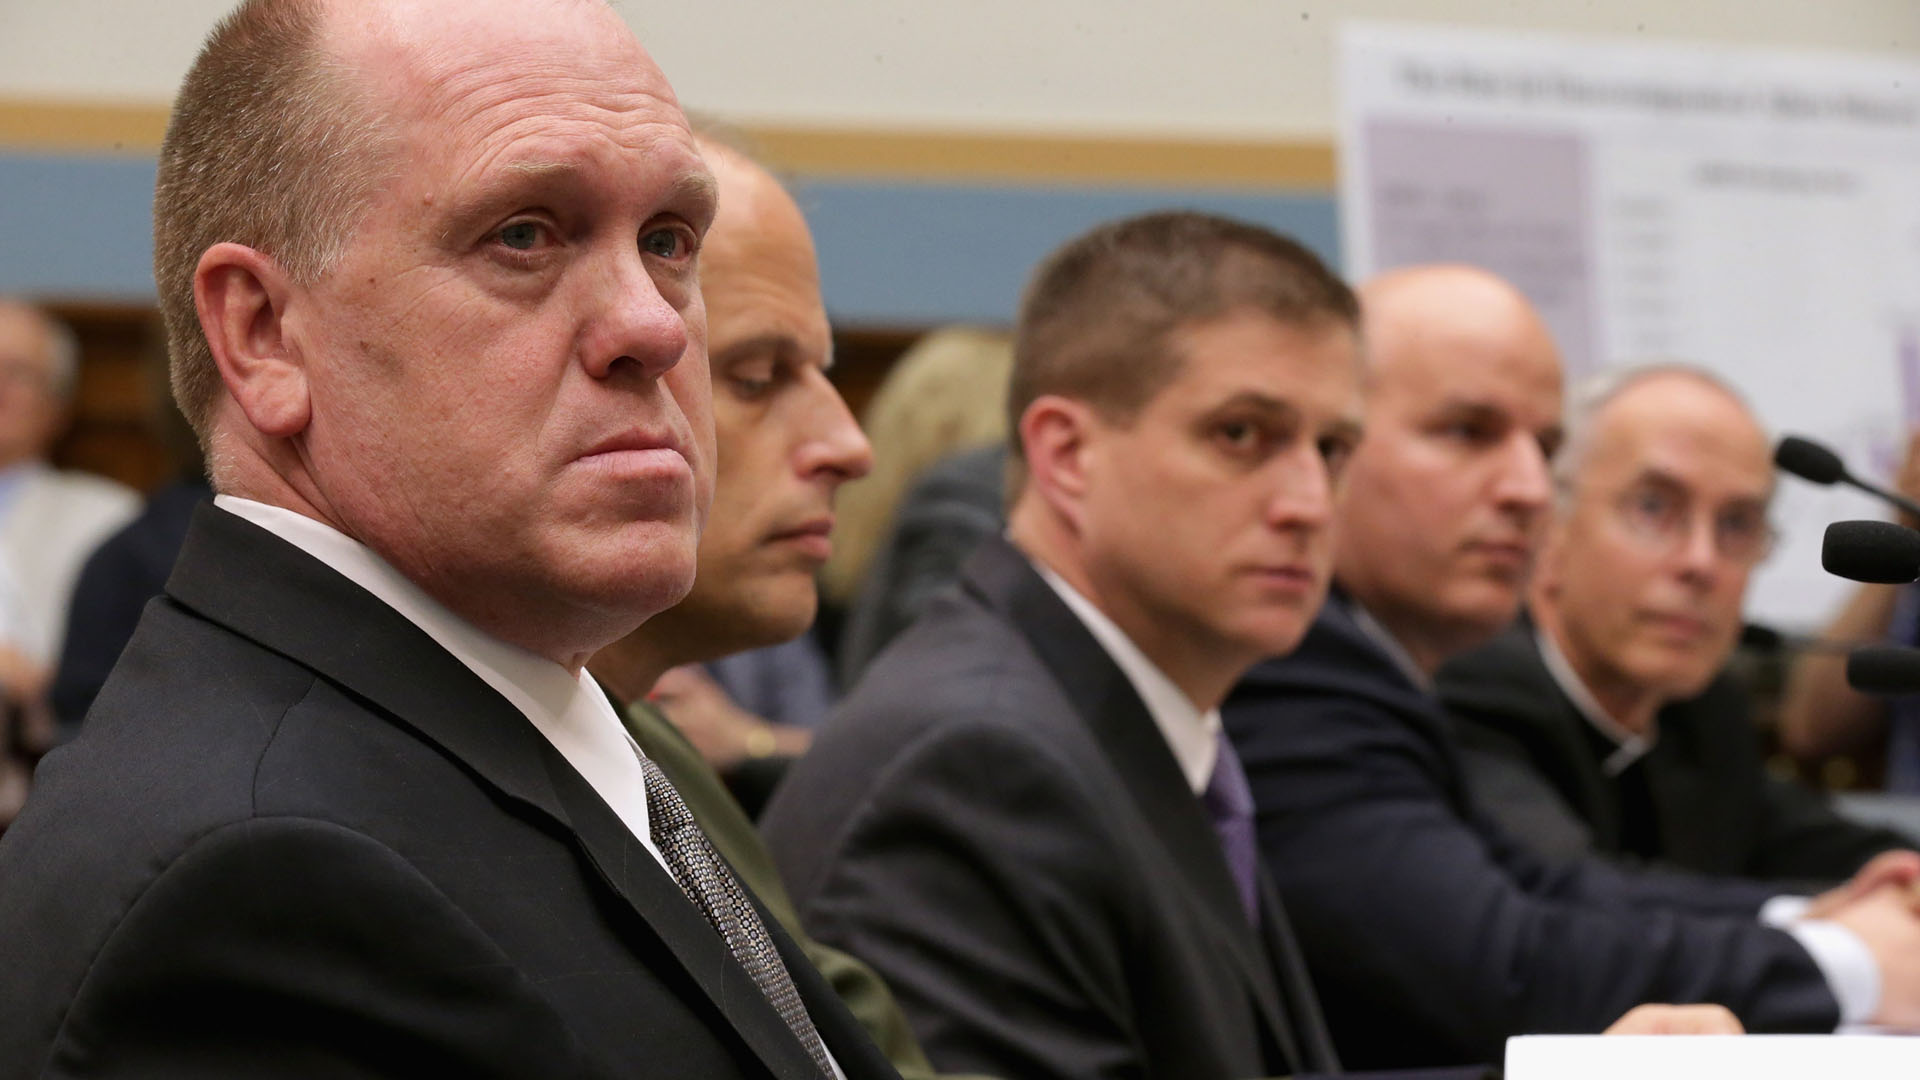 Tom Homan and others testify before the House Judiciary Committee about the surge of unaccompanied Central American minors who have been crossing the U.S.-Mexico border, during a hearing in Capitol Hill on June 25, 2014, in Washington, D.C. (Credit: Chip Somodevilla/Getty Images)